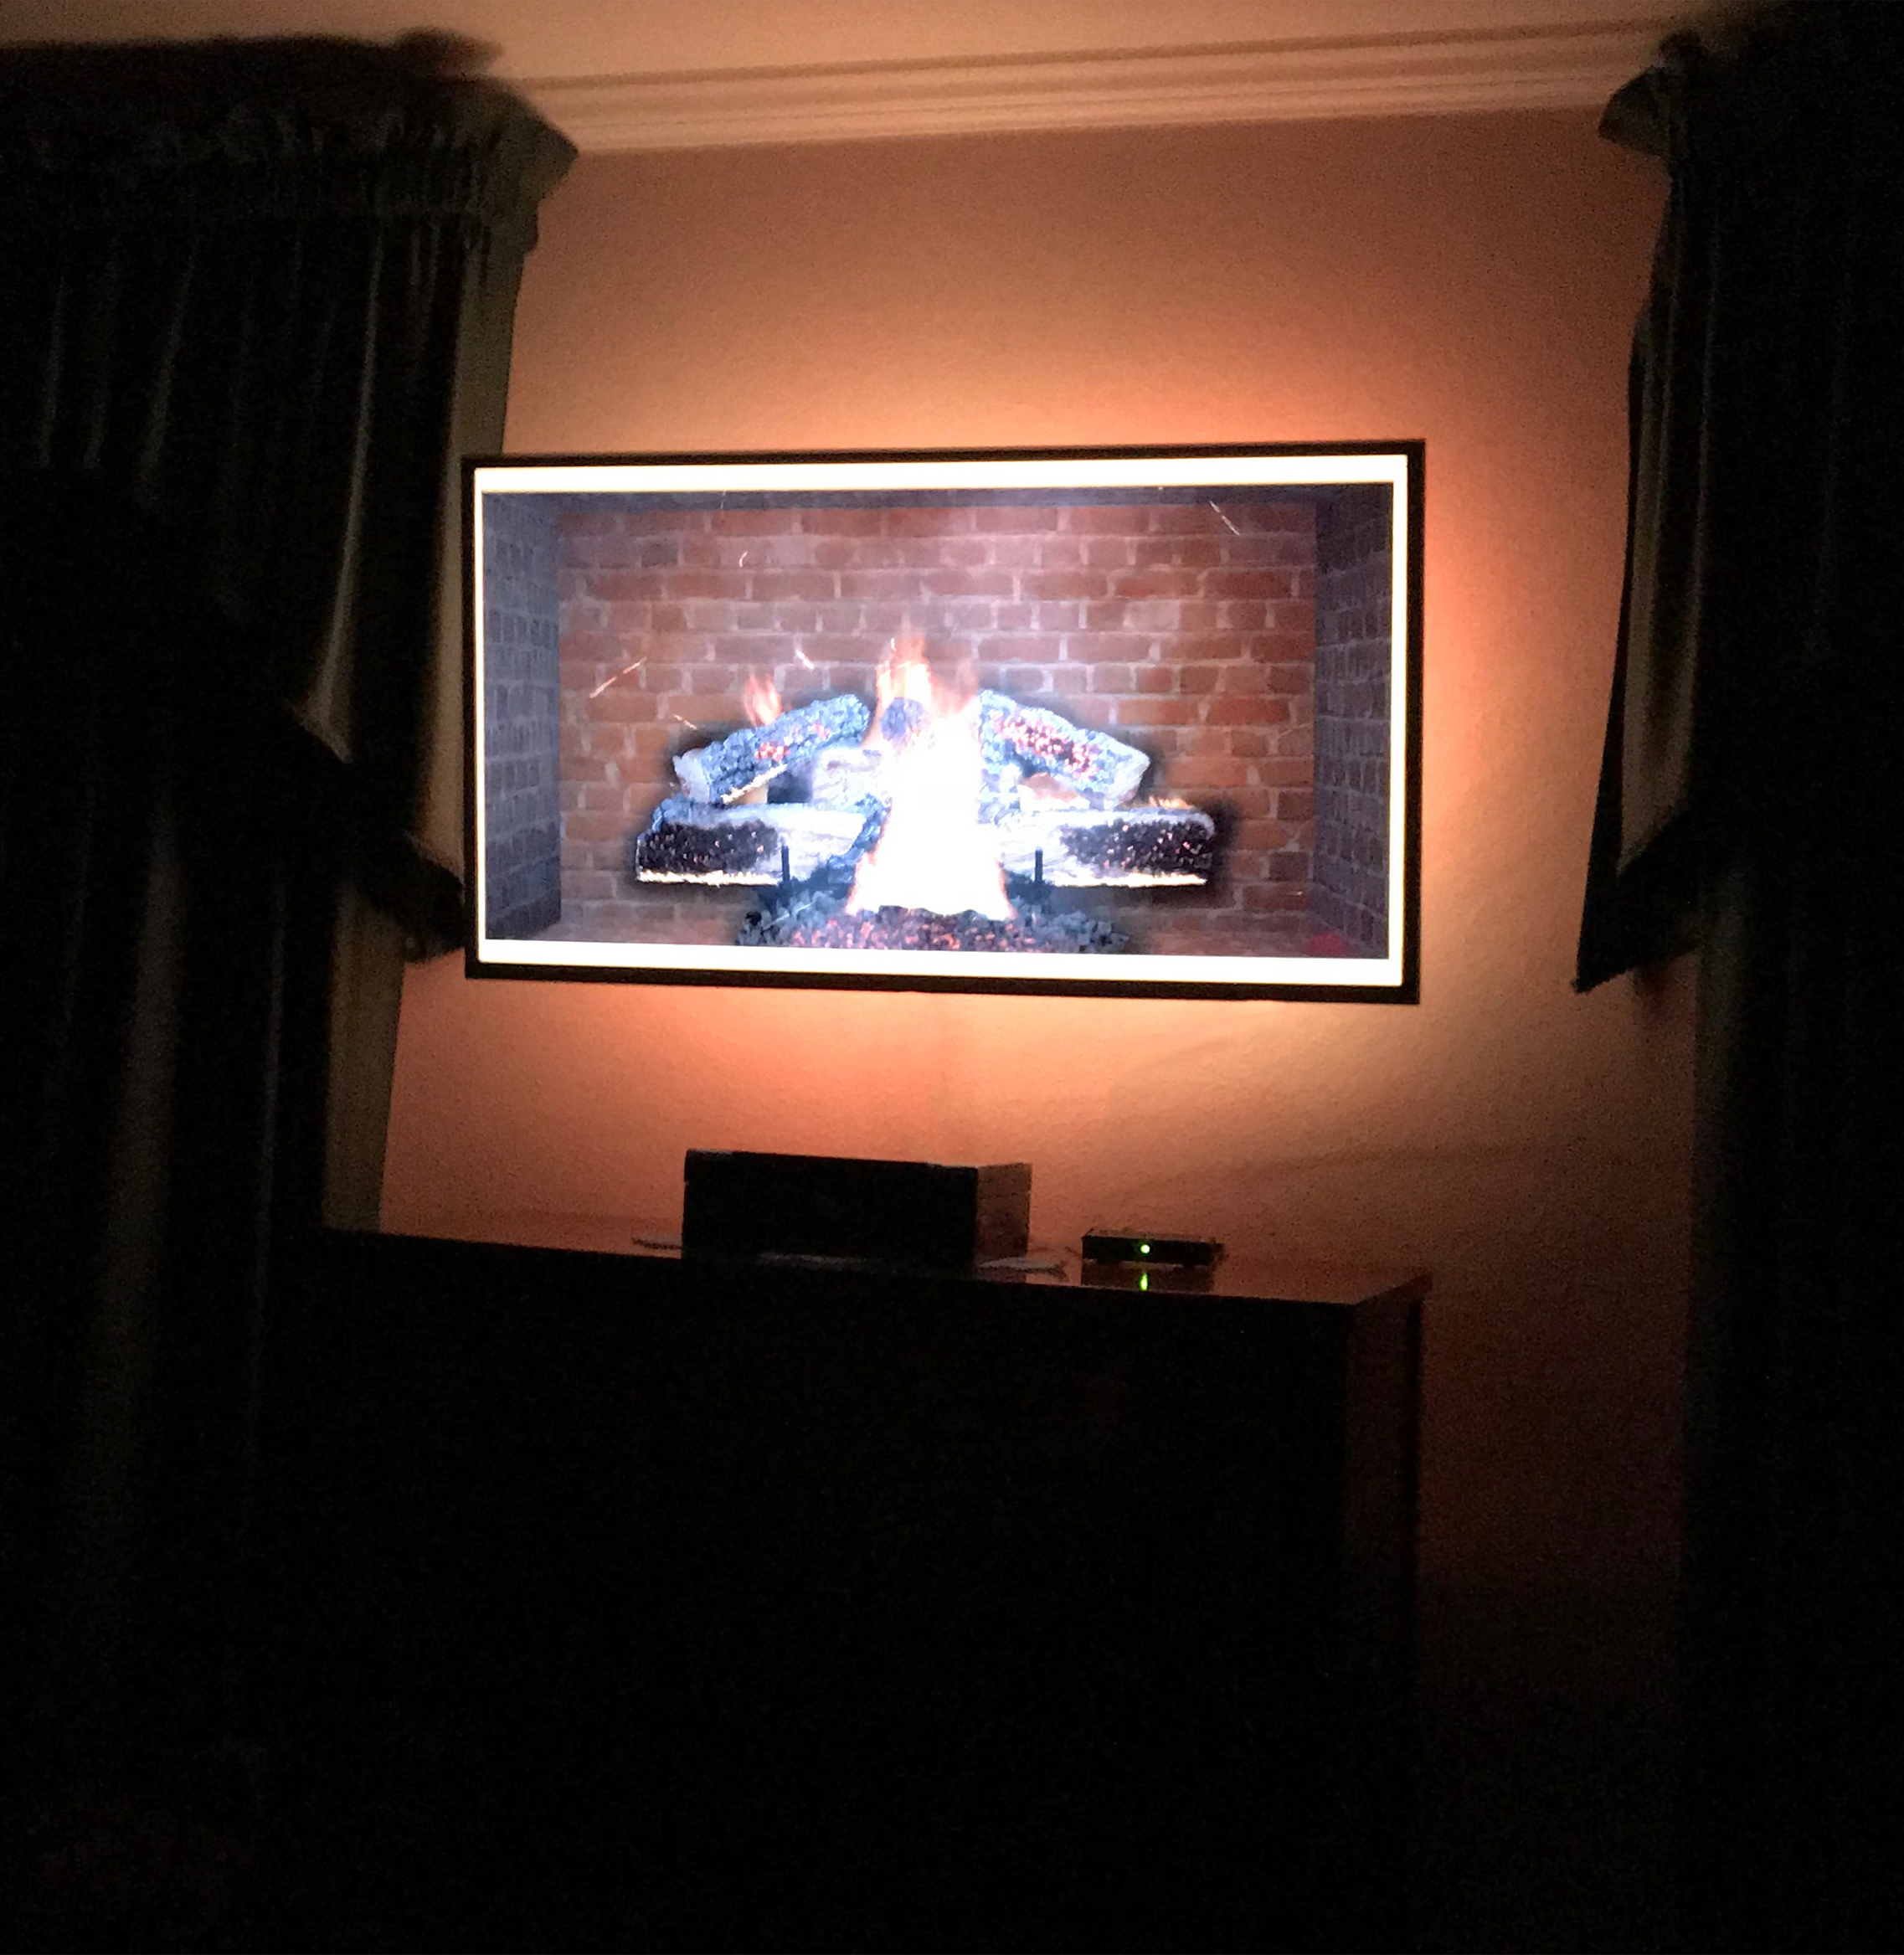 Bedroom TV with backlight